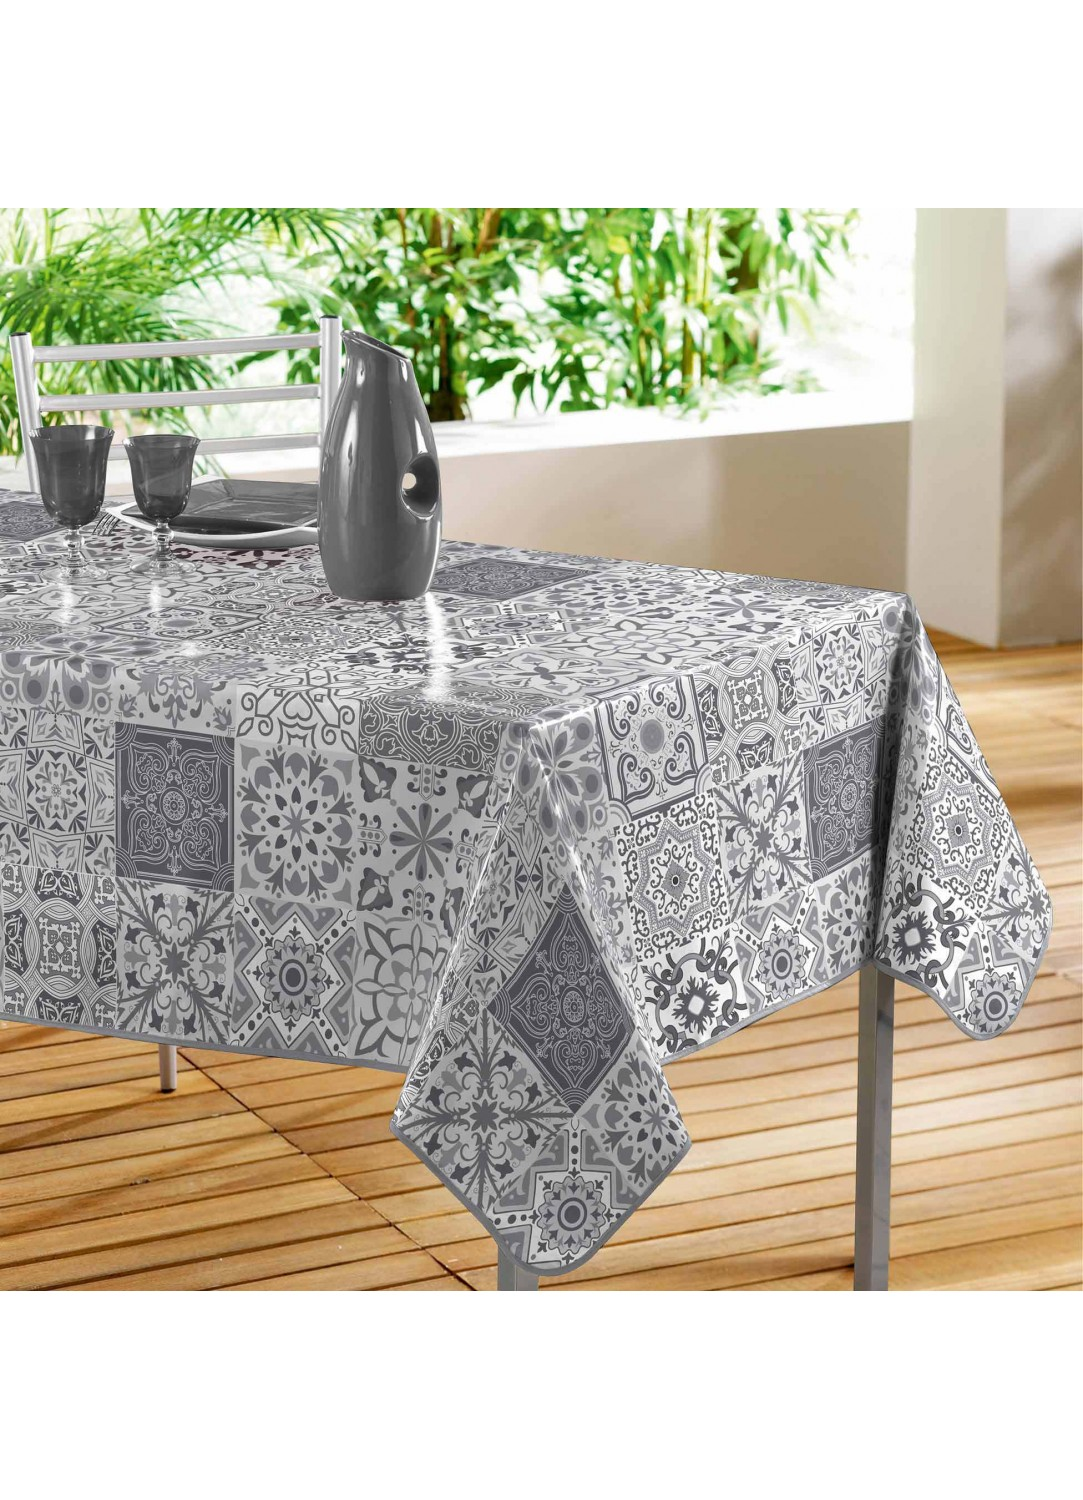 Nappe rectangulaire en pvc impression carreaux de ciment gris homemaison vente en ligne - Nappe carreaux de ciment ...